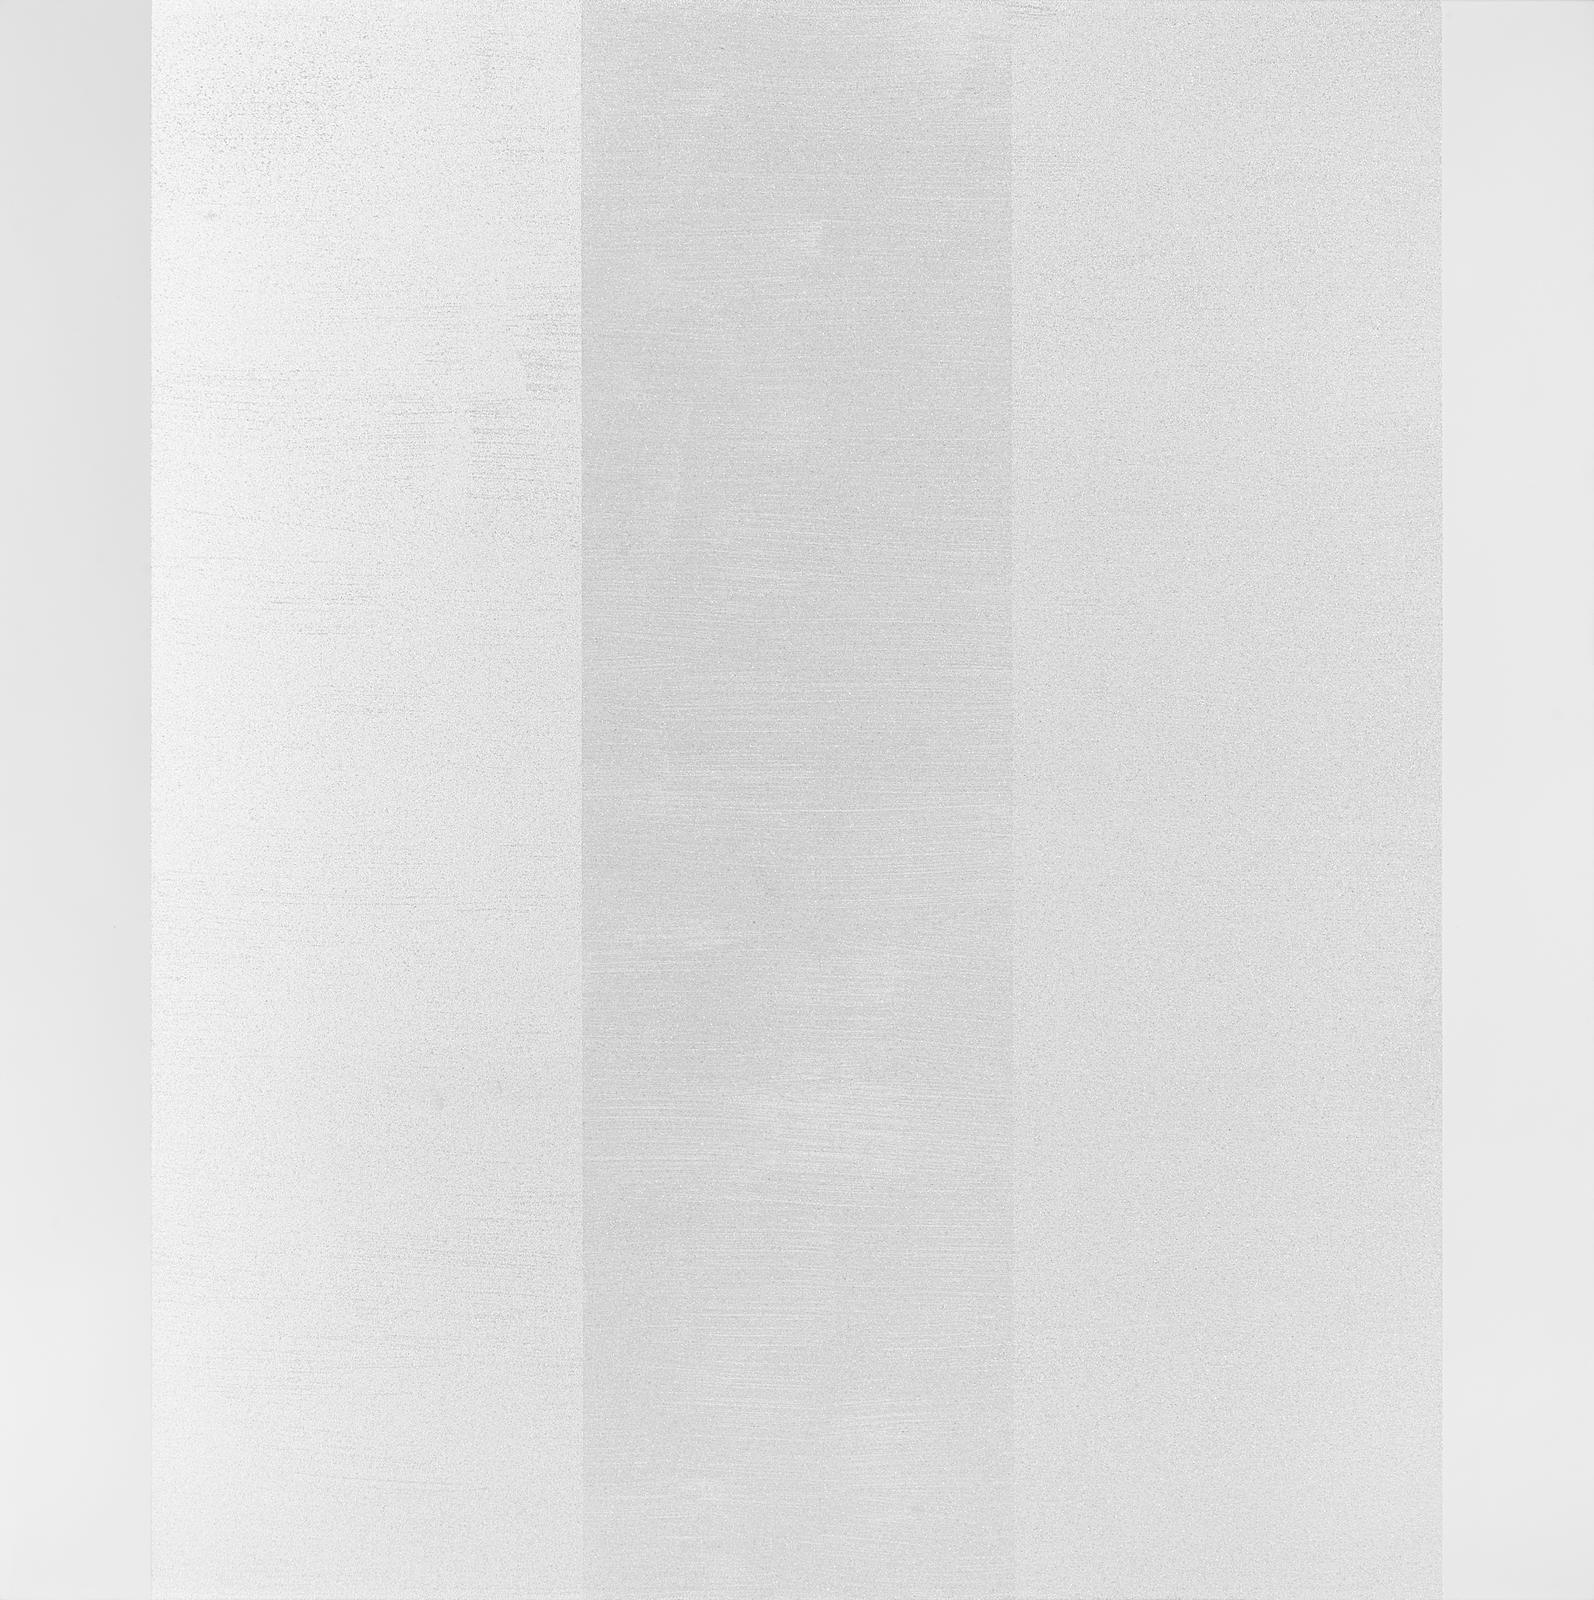 Mary Corse-Untitled (White Flat sides with Three Inner Bands)-2001